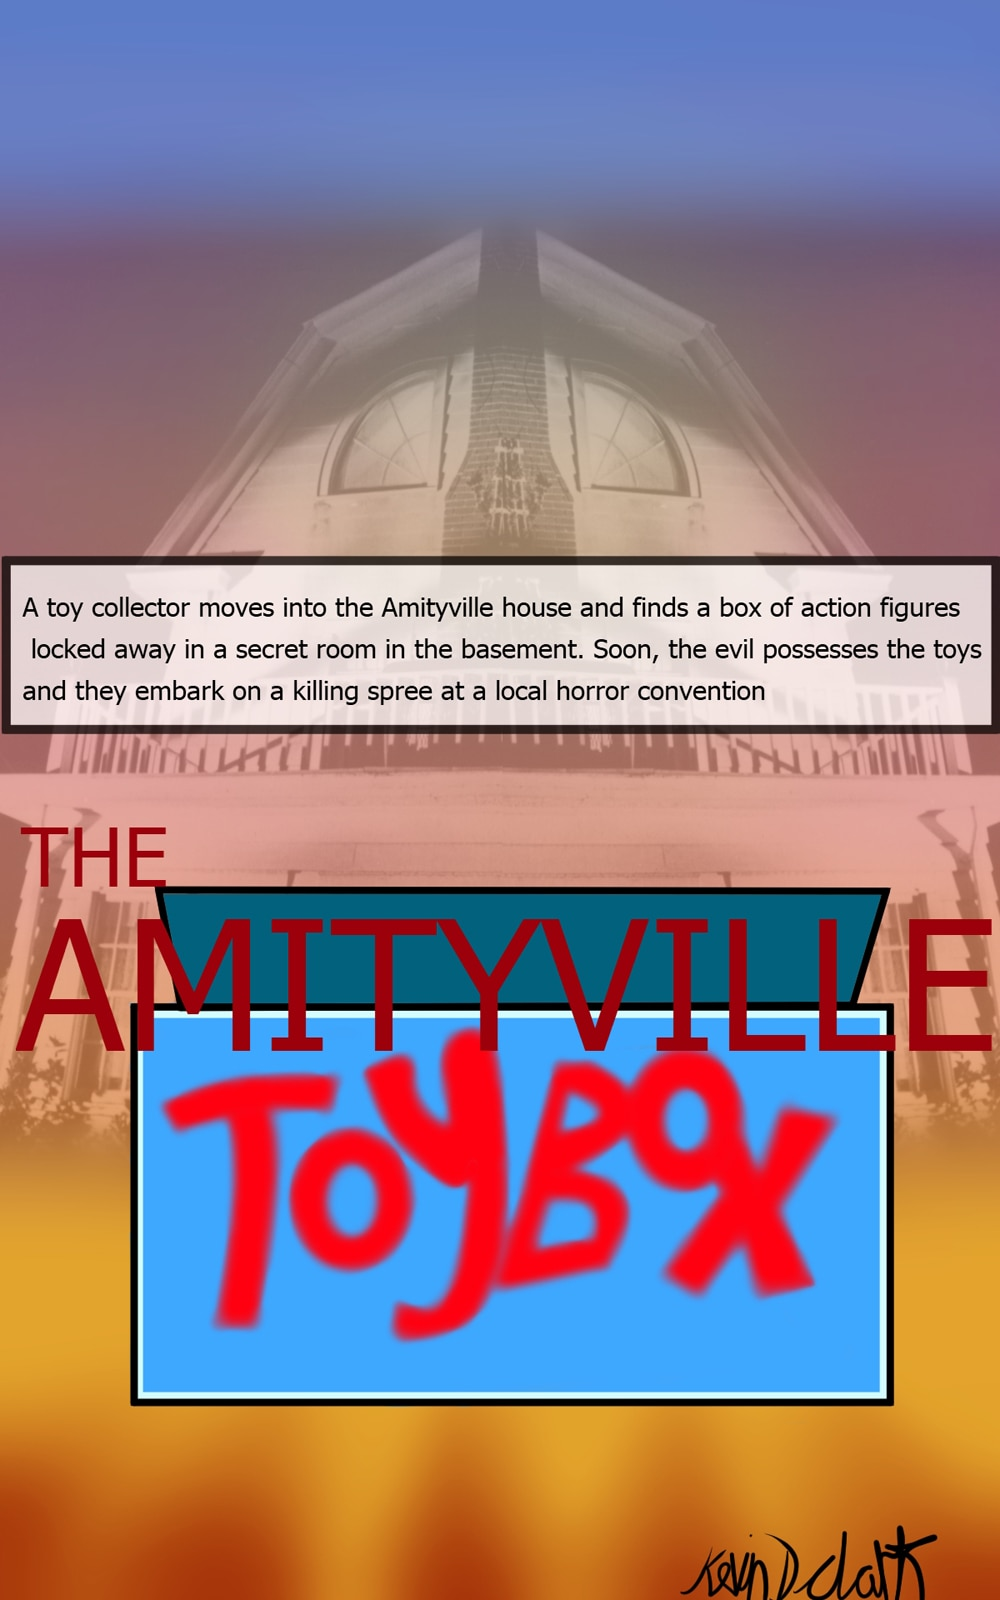 such sights amityville toy - Such Sights to Show You – 01/31/18